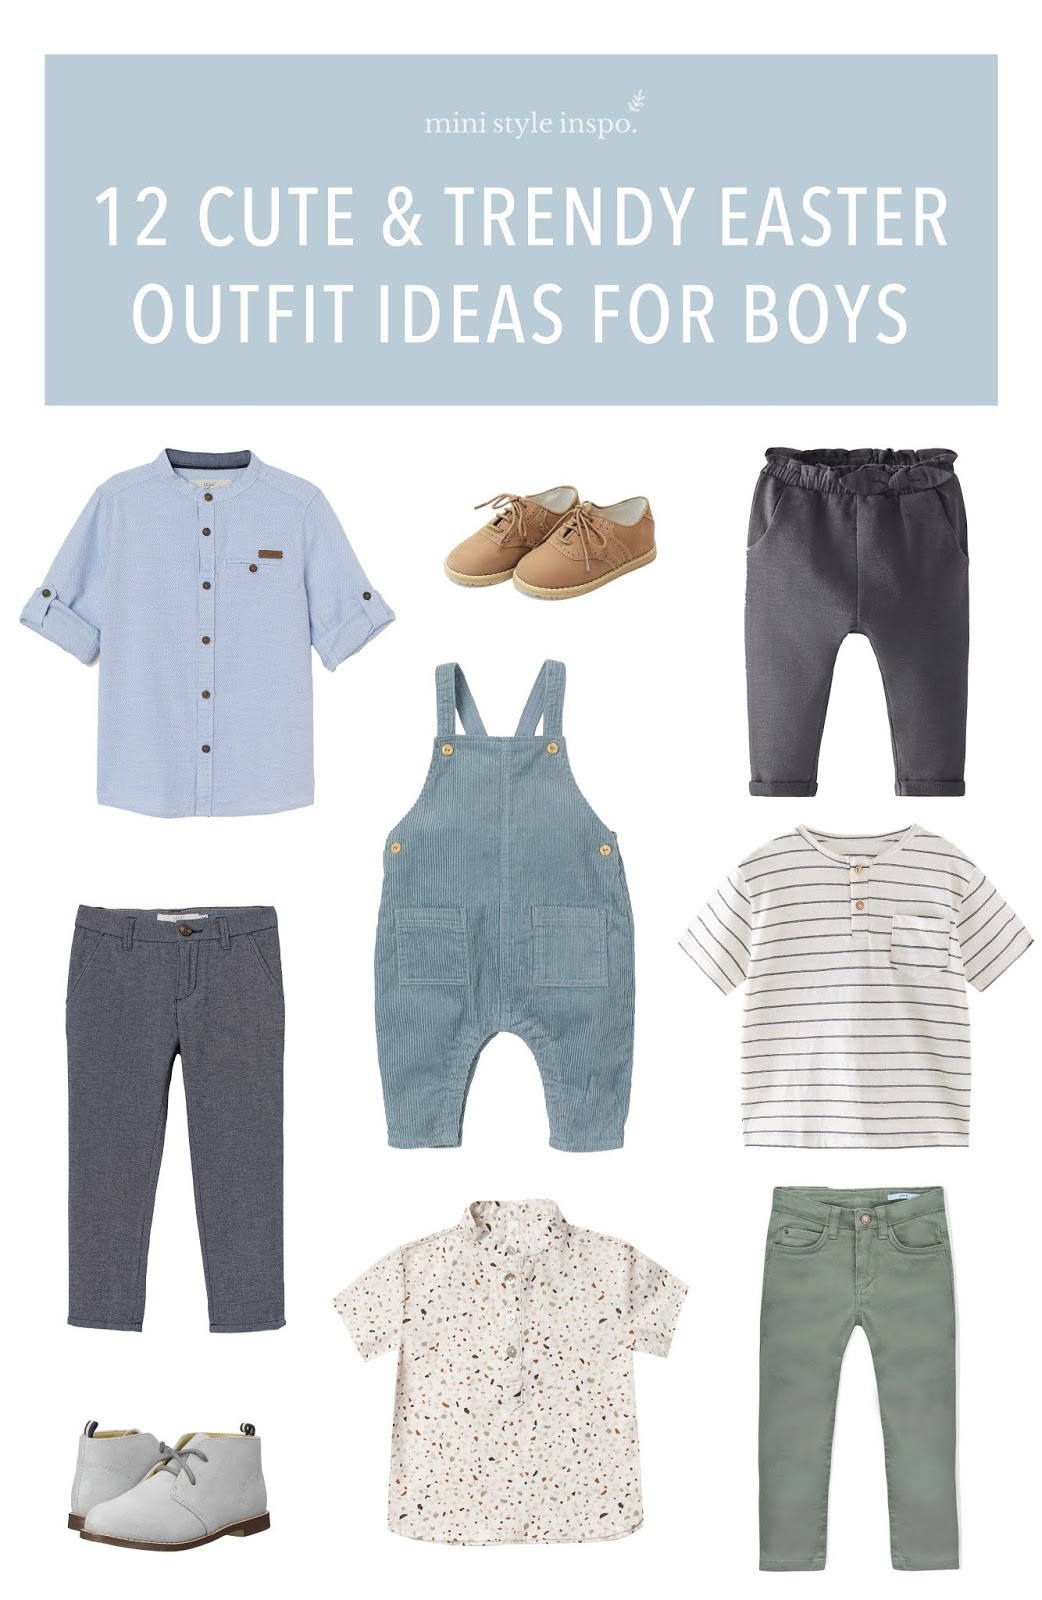 Cute and trendy Easter outfit ideas for boys